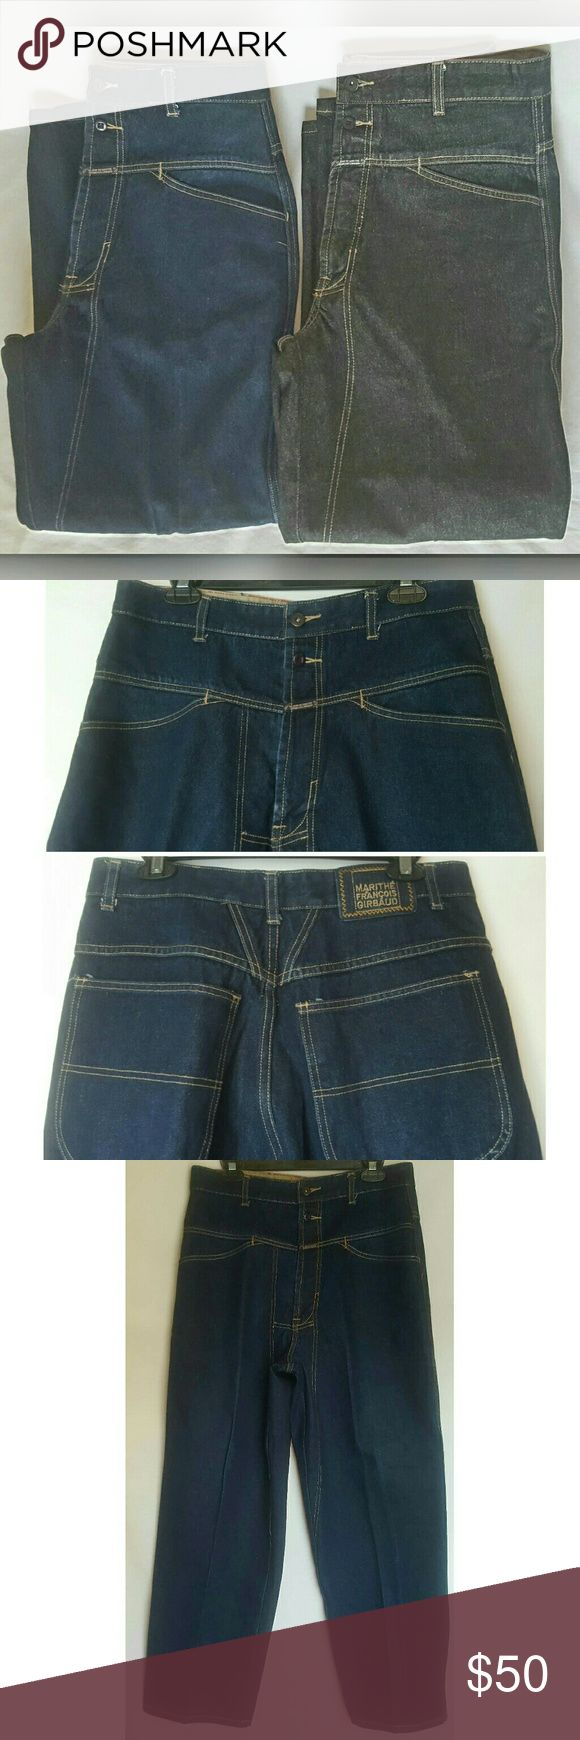 """Men's Girbaud Jeans Both pair of Men's Girbaud Jeans are included in sale - Size 32S - Inseam 29"""" - Excellent Condition - 100% Cotton -  ALL OFFERS CONSIDERED Girbaud Jeans Relaxed"""